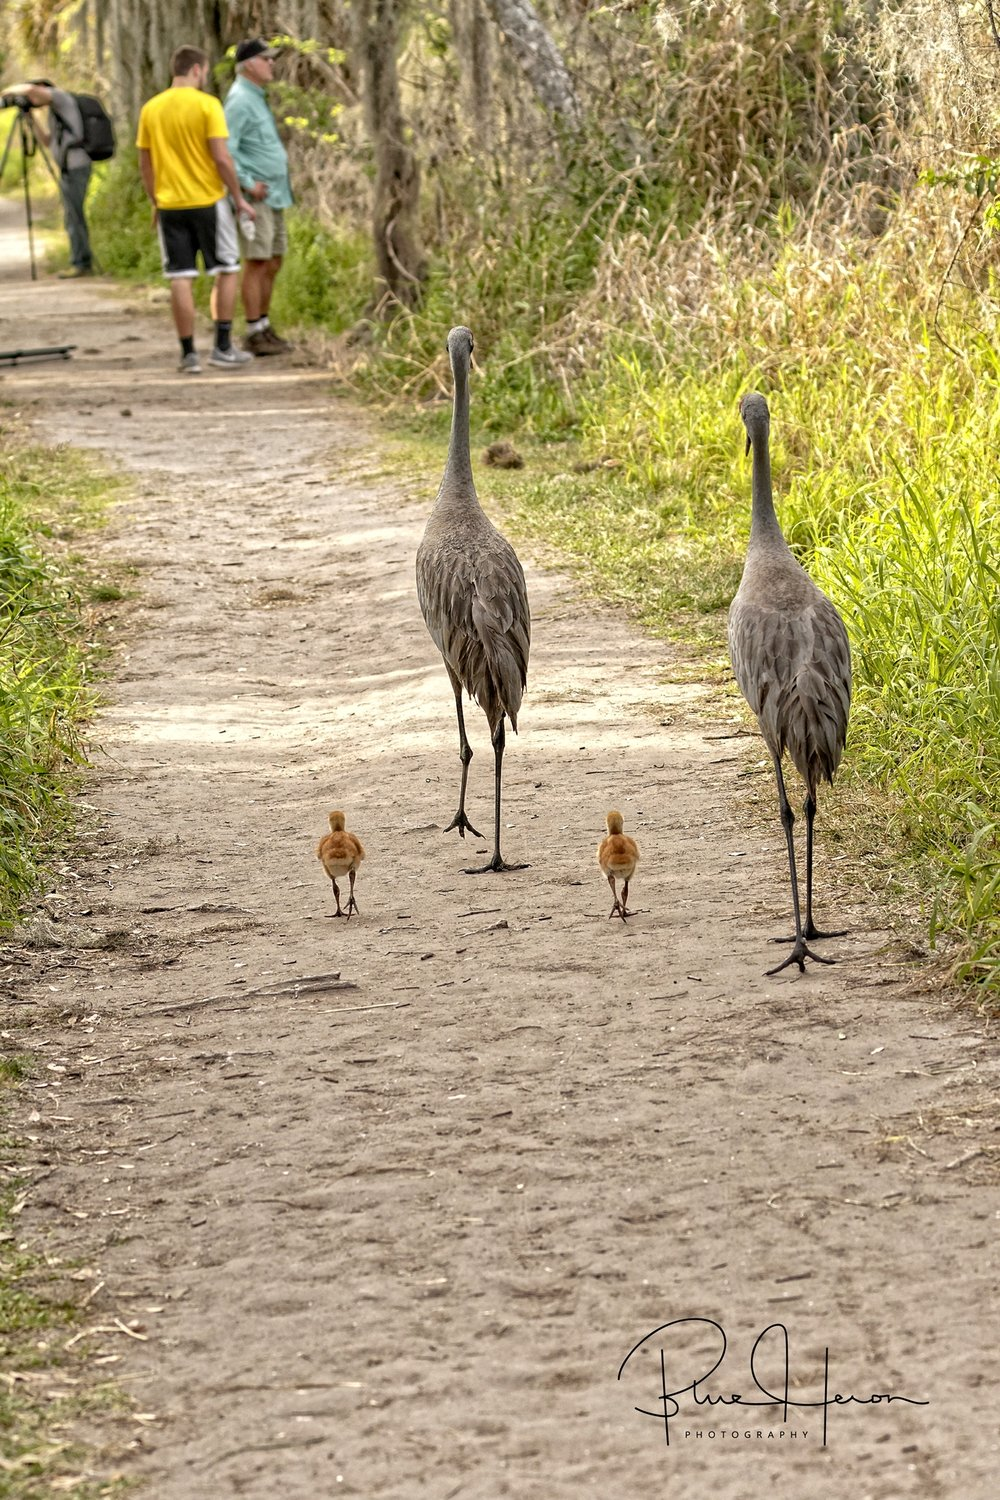 We encounter a Sandhill Crane pair with colts along our path